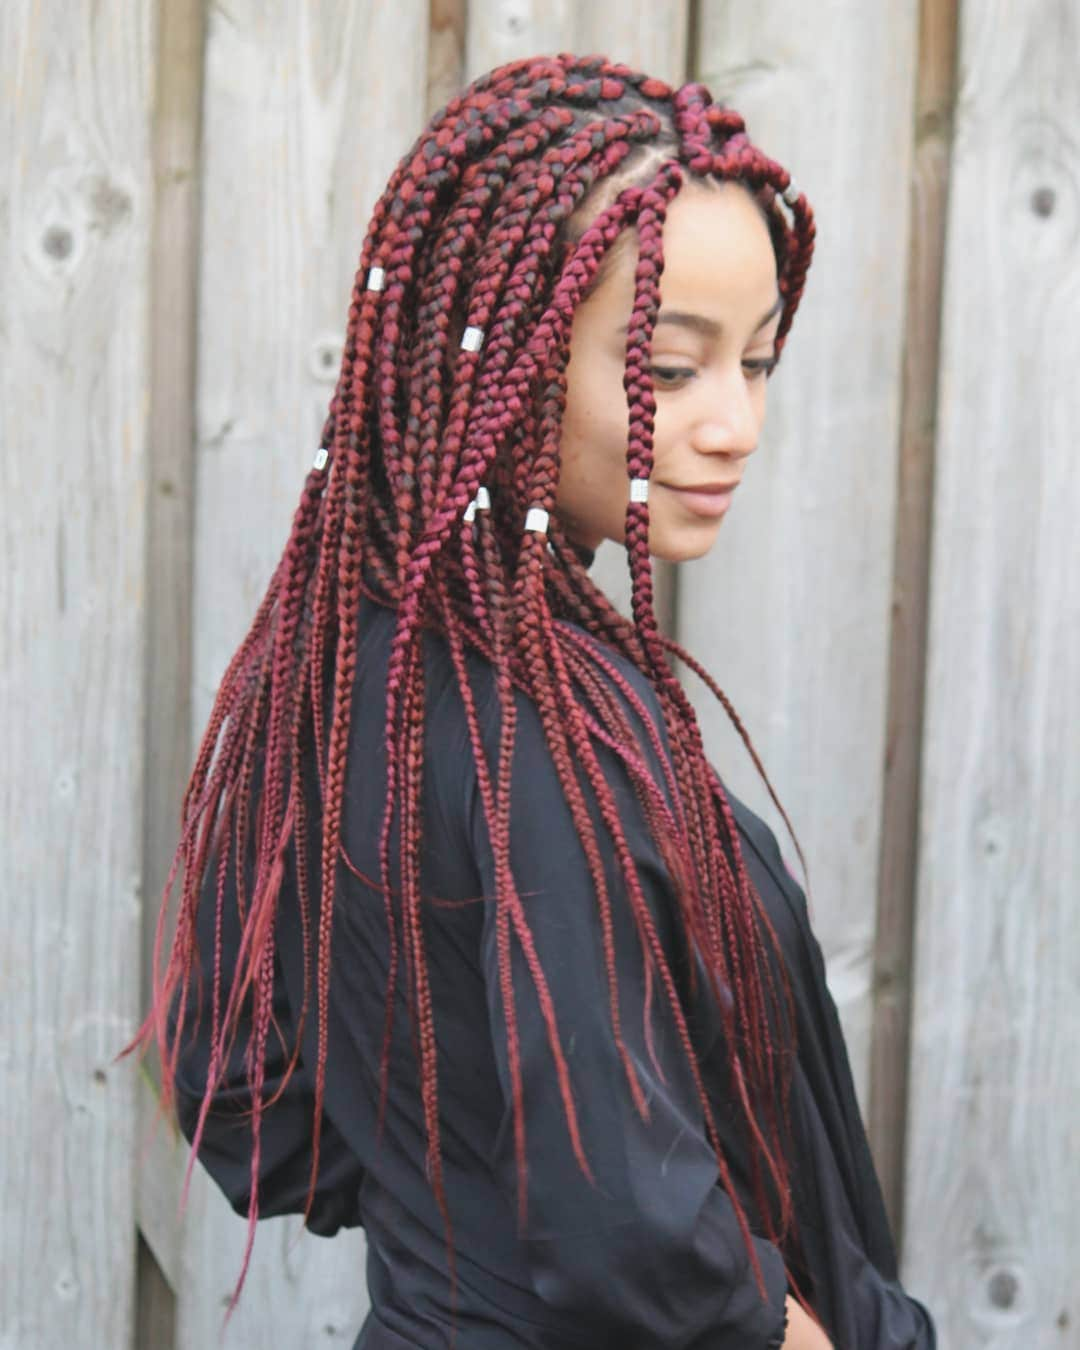 woman with long red braids and hair cuffs in them